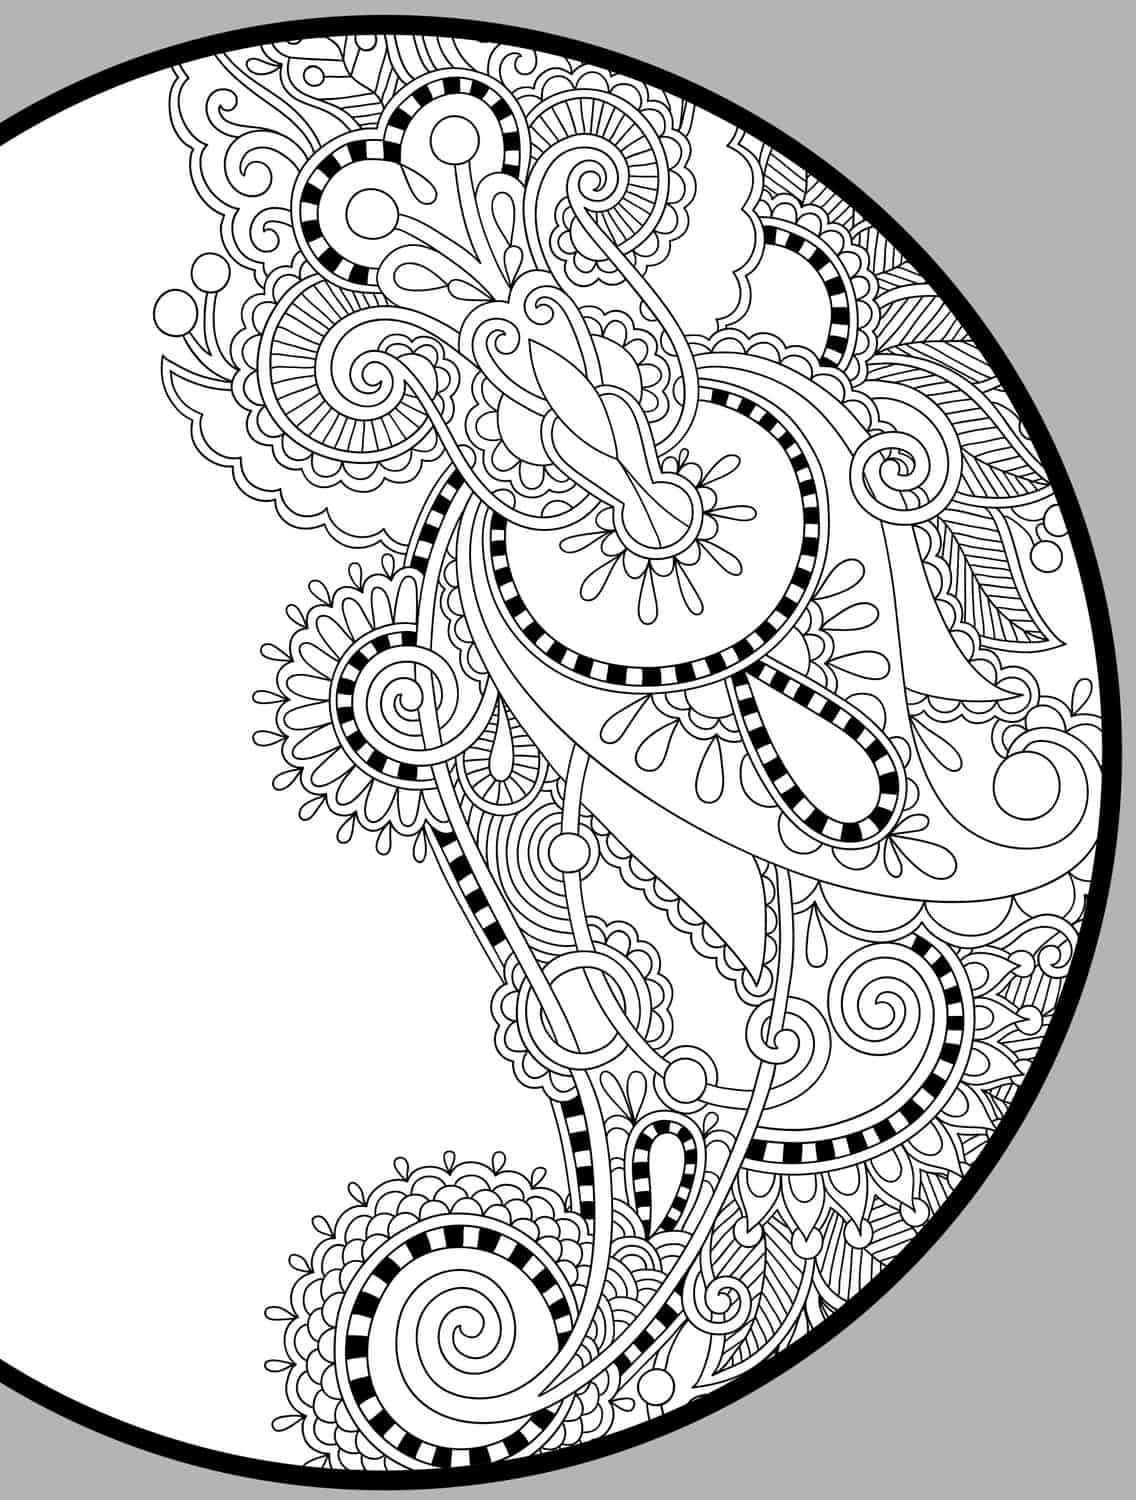 adult coloring pages free printable - 10 free printable holiday adult coloring pages